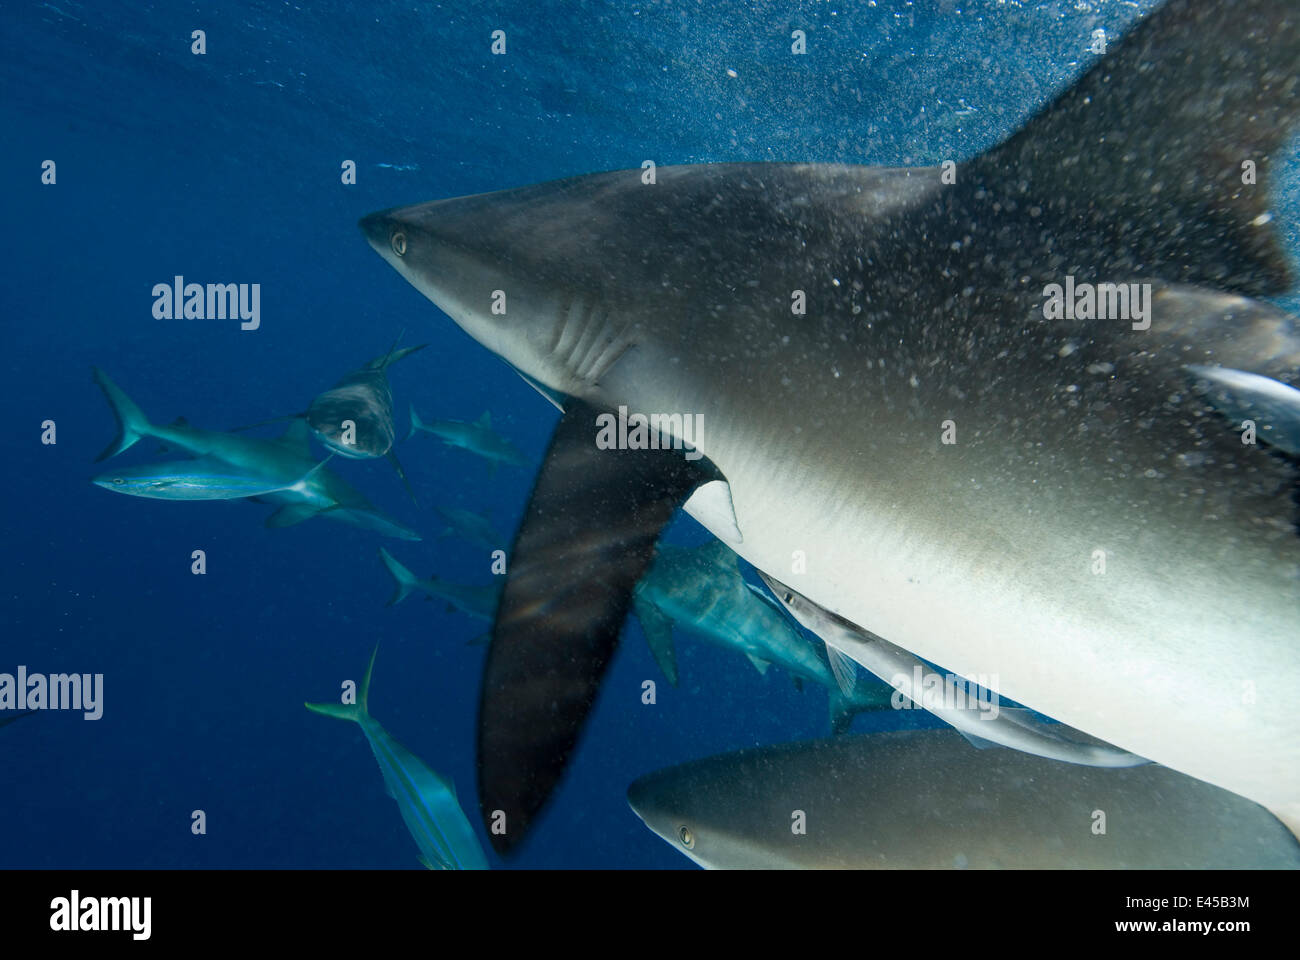 Grey Reef sharks (Carcharhinus amblyrhynchos) at North Horn teeming at water surface - Stock Image